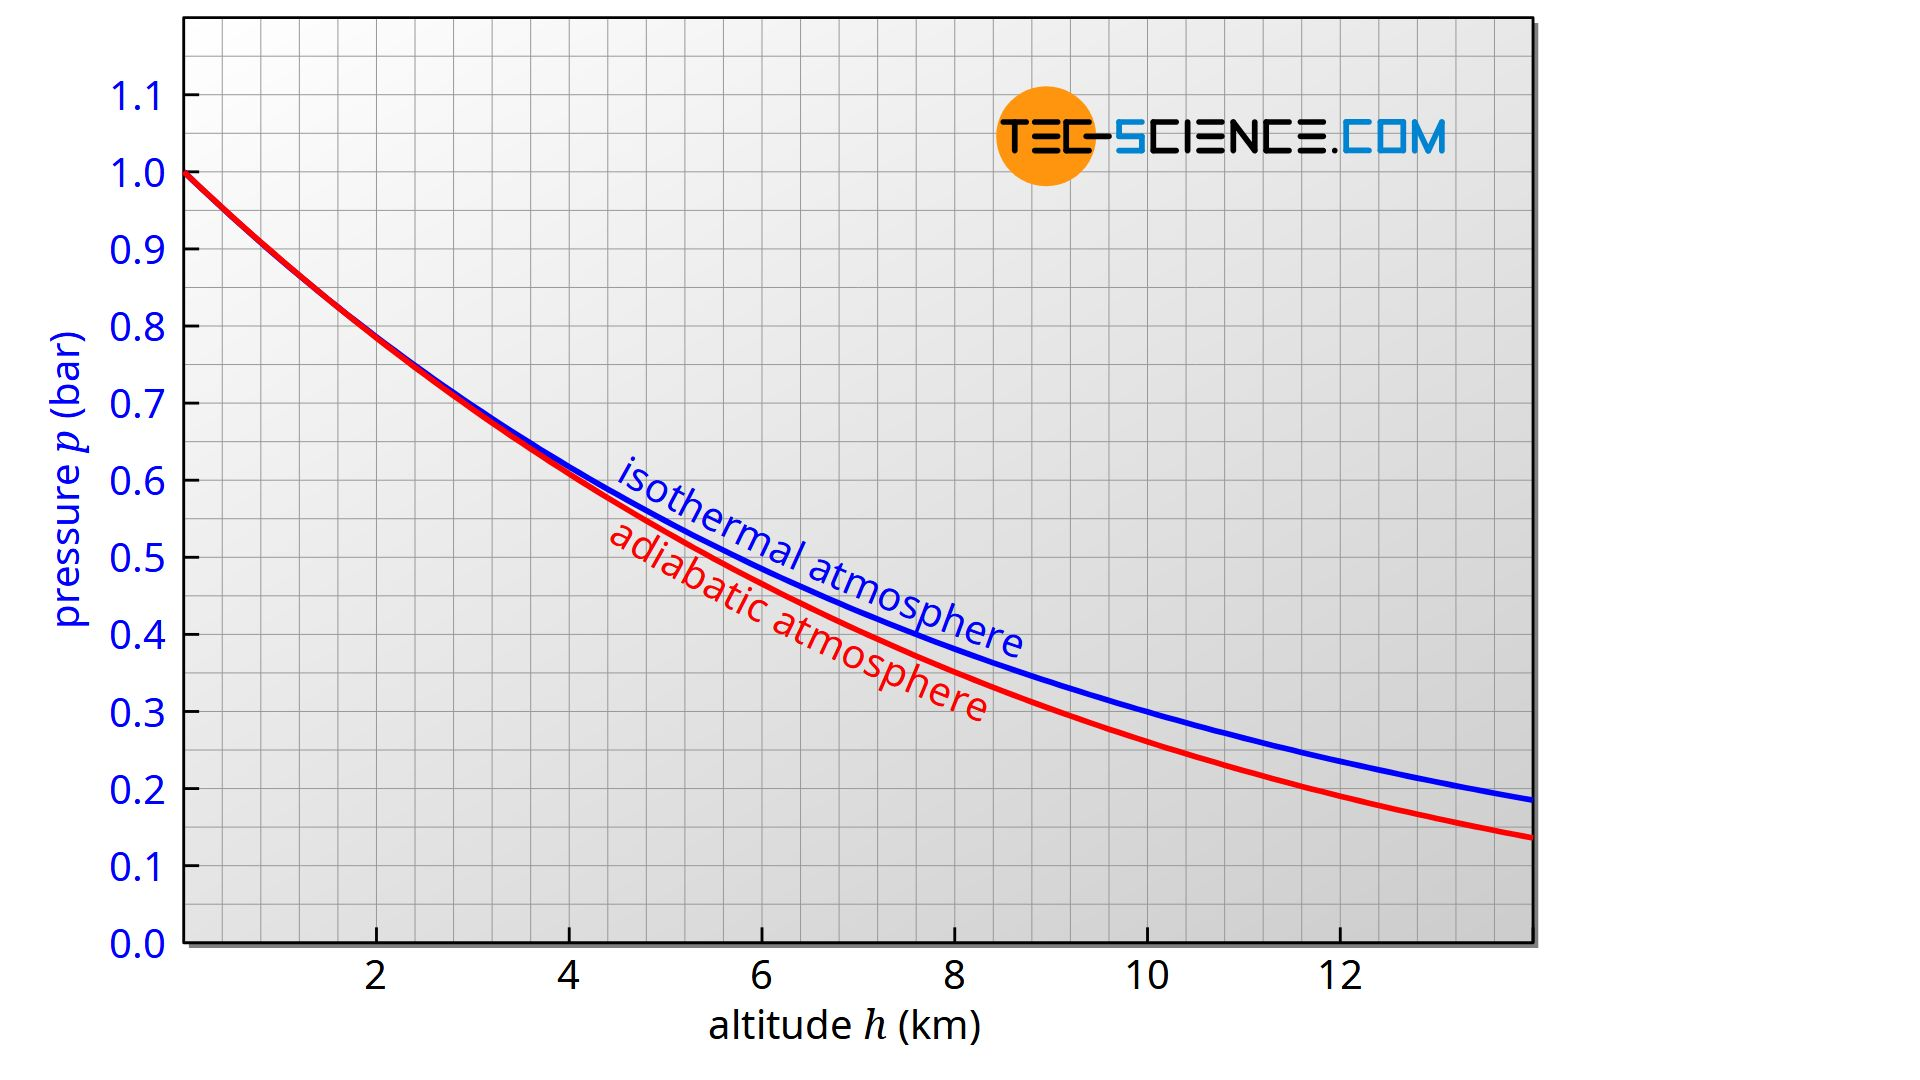 Comparison of the classical barometric formula (isothermal atmosphere) with the extended formula (adiabatic atmosphere)